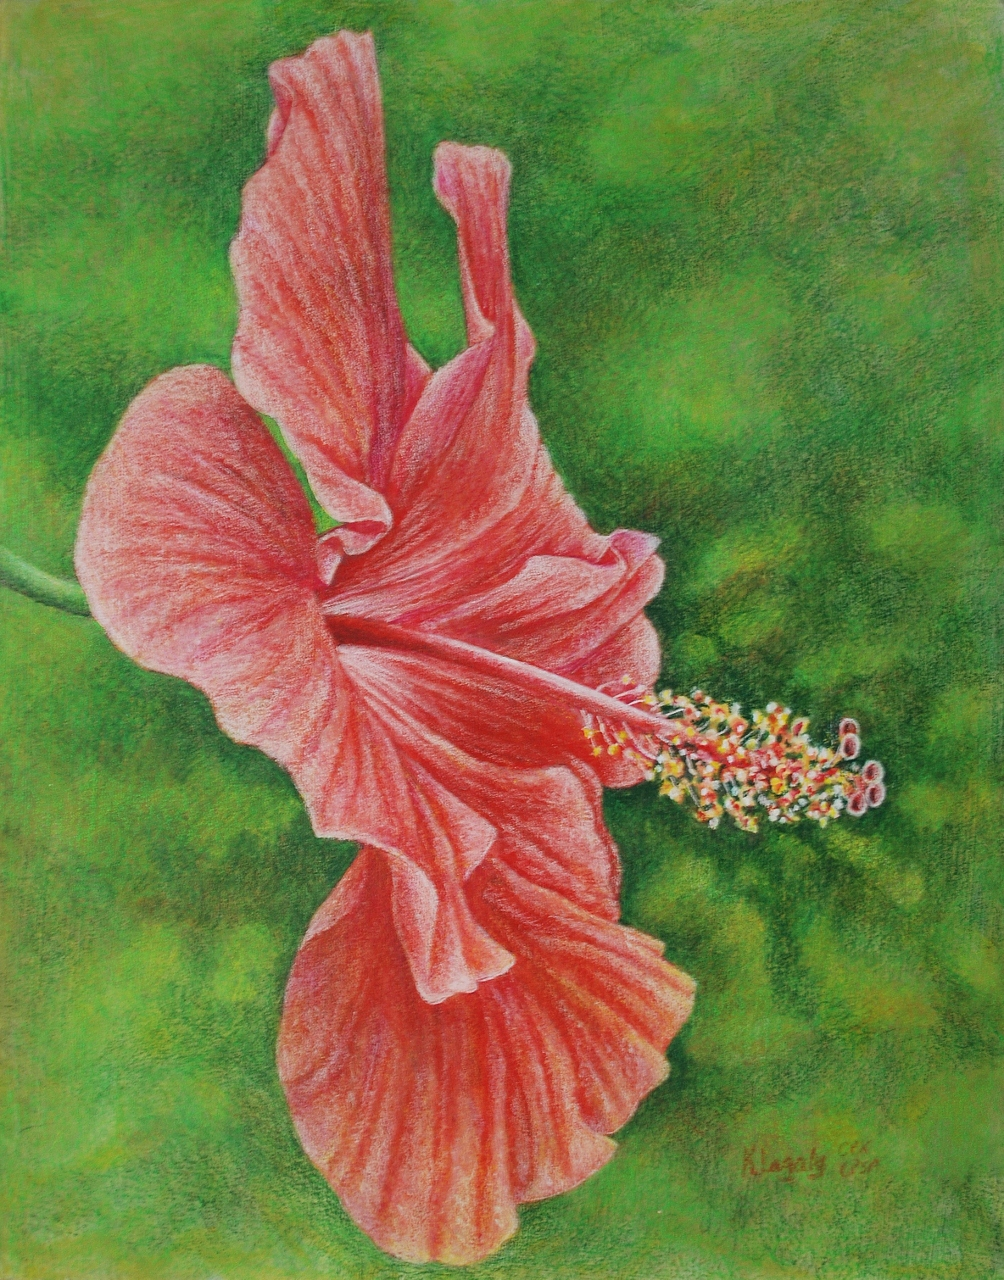 Hibiscus 2 by k8lag